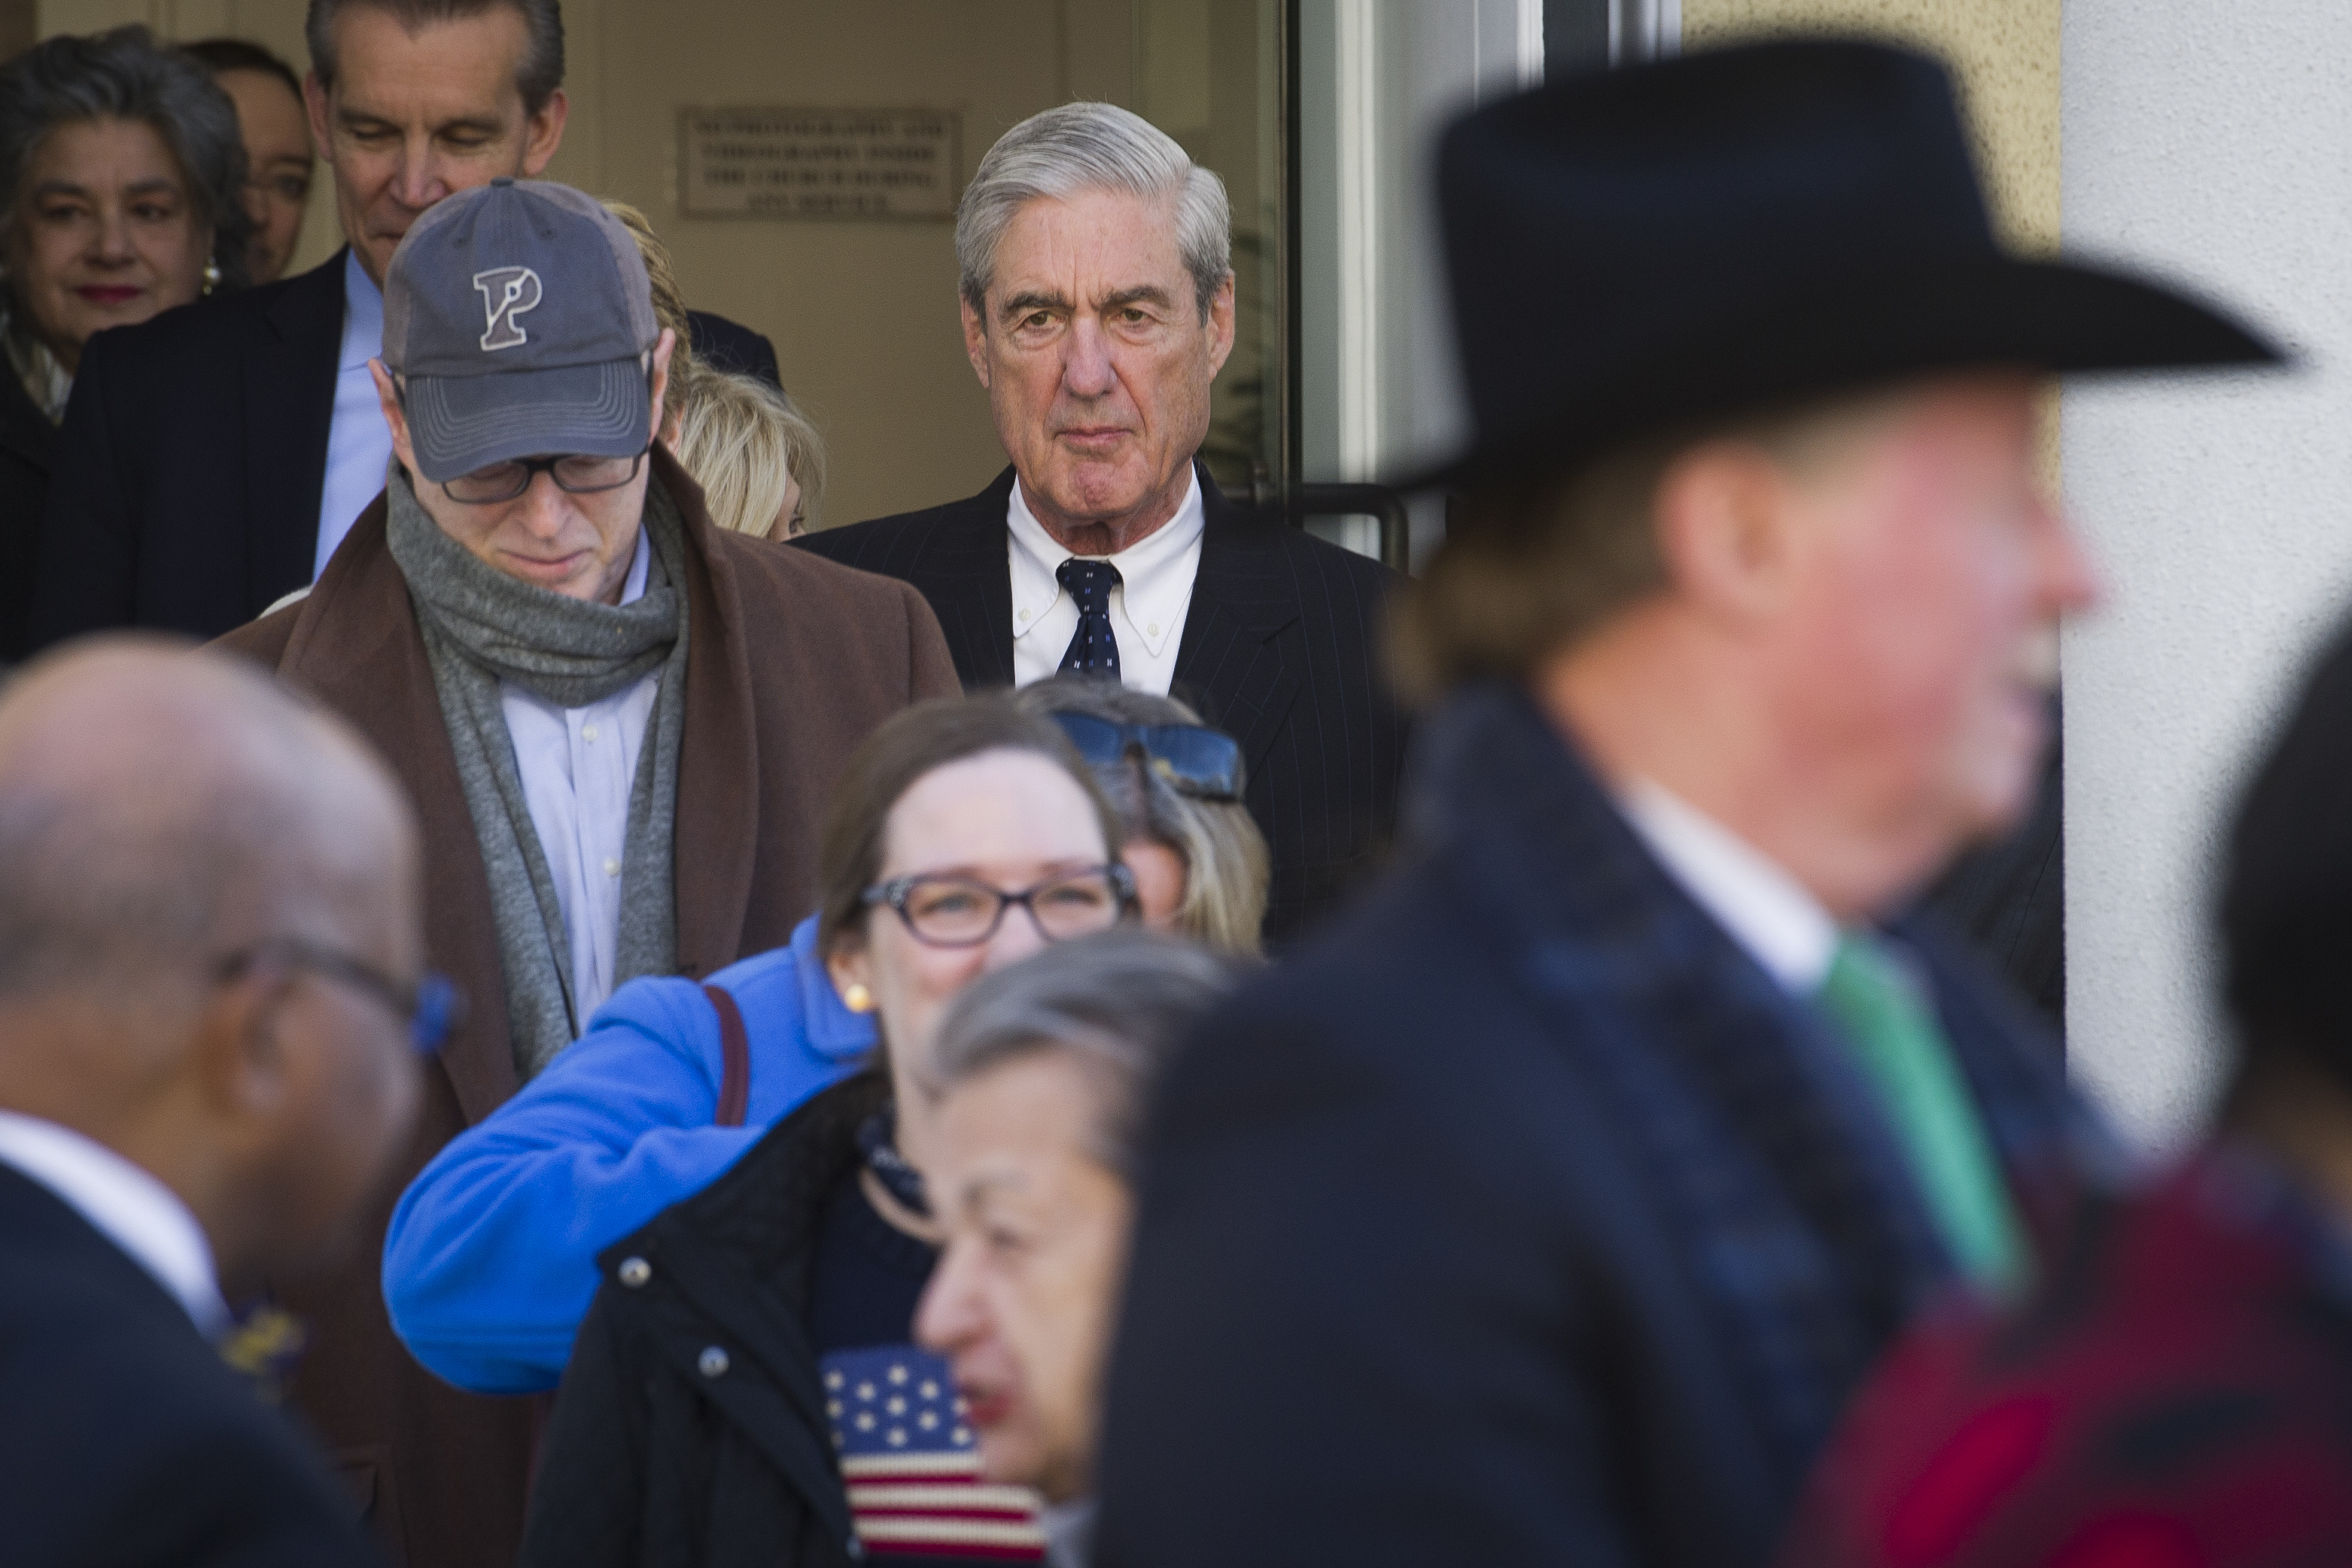 Special Counsel Robert Mueller exits St. John's Episcopal Church after attending services, across from the White House, in Washington, Sunday.